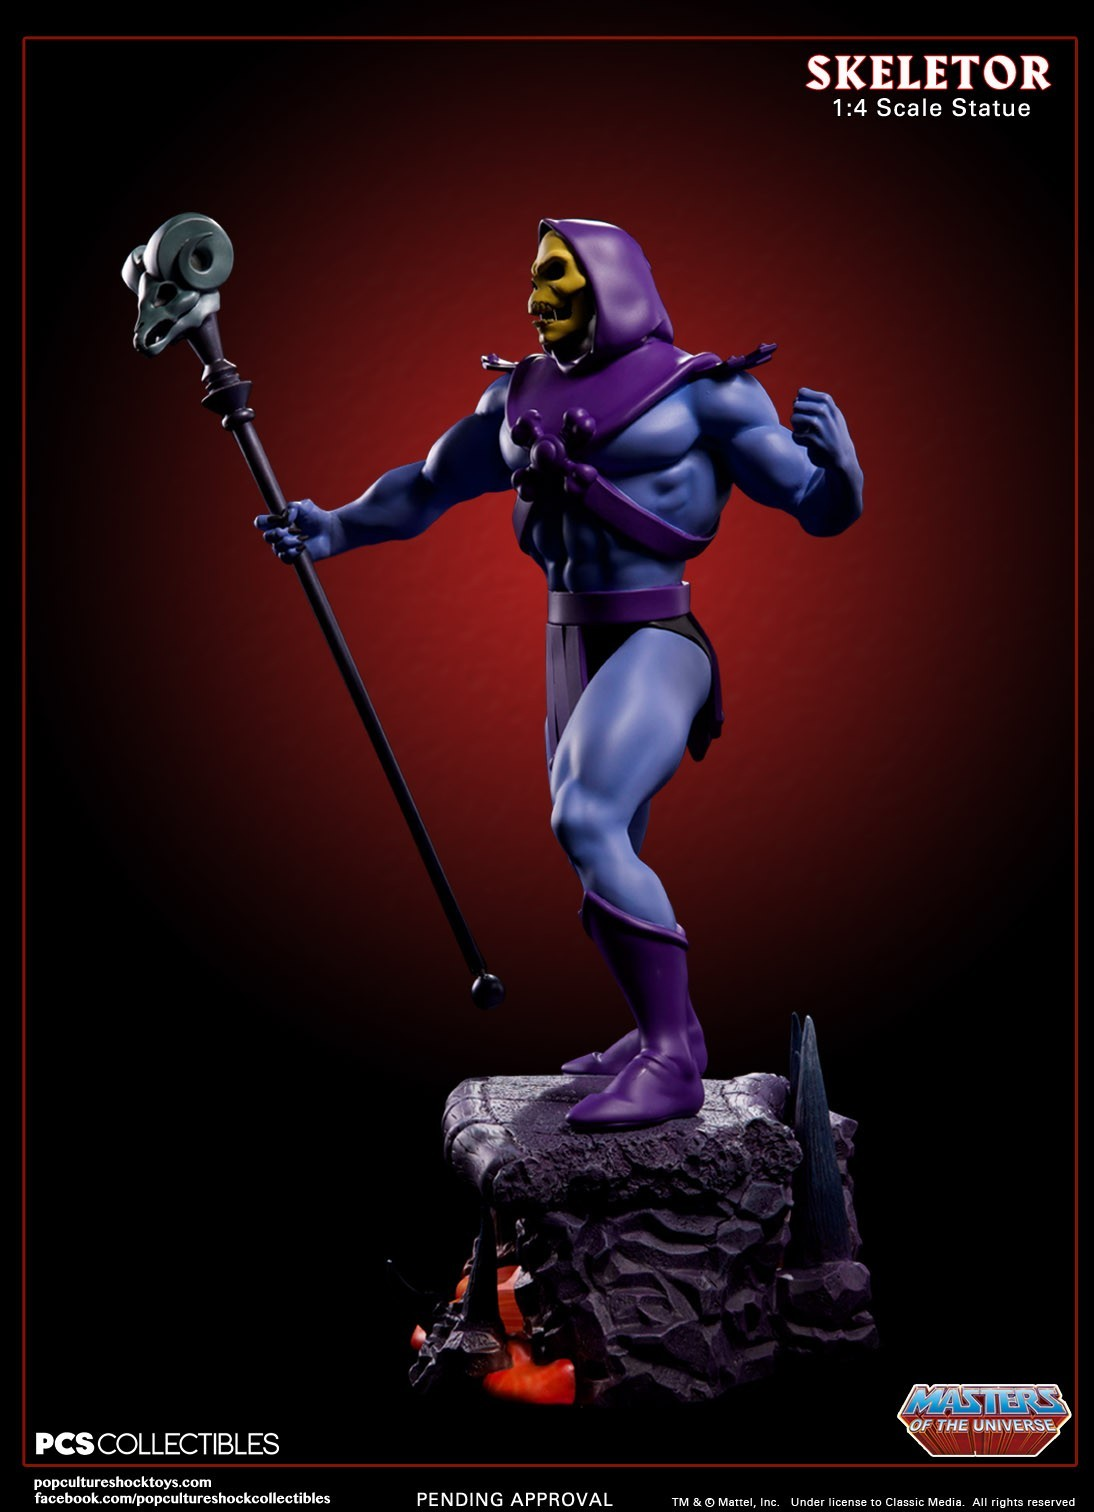 Alejandro pereira skeletor media e 1